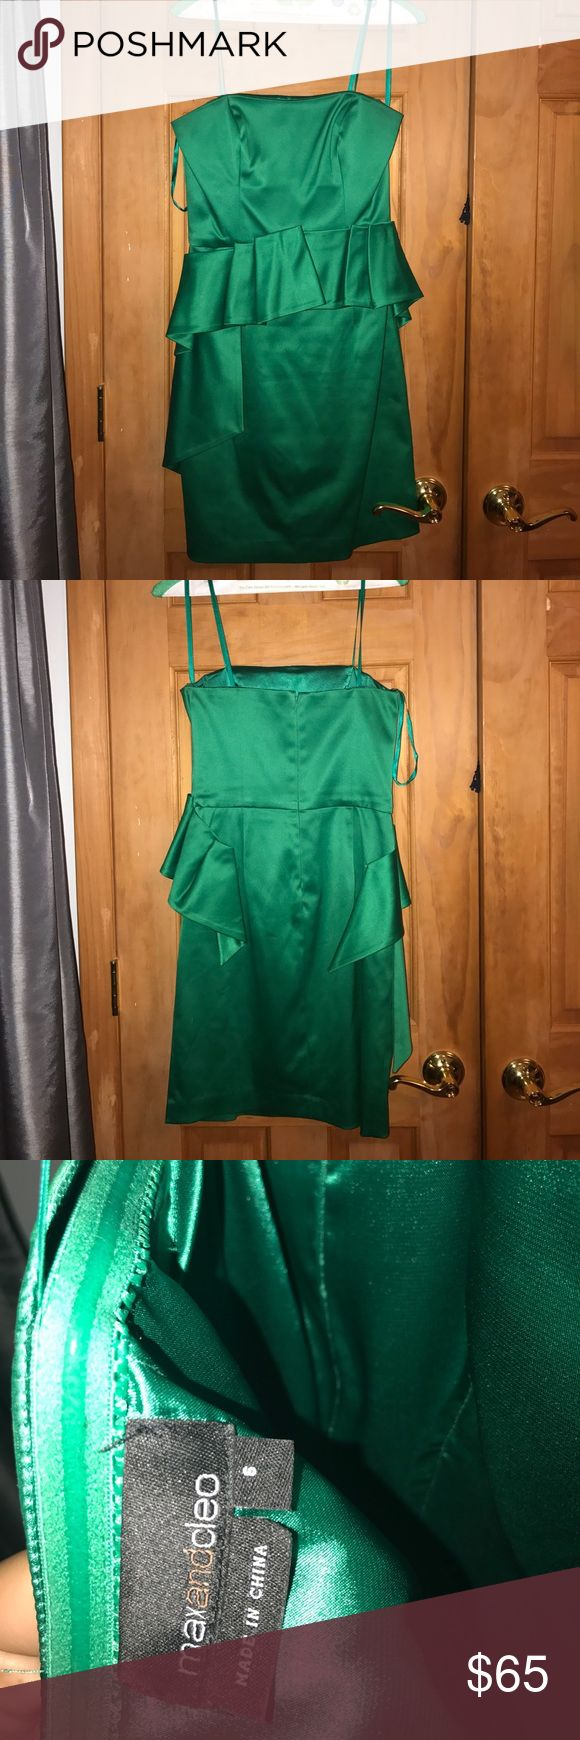 Max and Cleo emerald green strapless peplum dress Max and Cleo peplum strapless short dress. Emerald green. Extremely flattering. Hugs all the right curves !! Worn twice. NO pulls or stains on the dress. OPEN TO NEGOTIATIONS. Max and Cleo Dresses Strapless